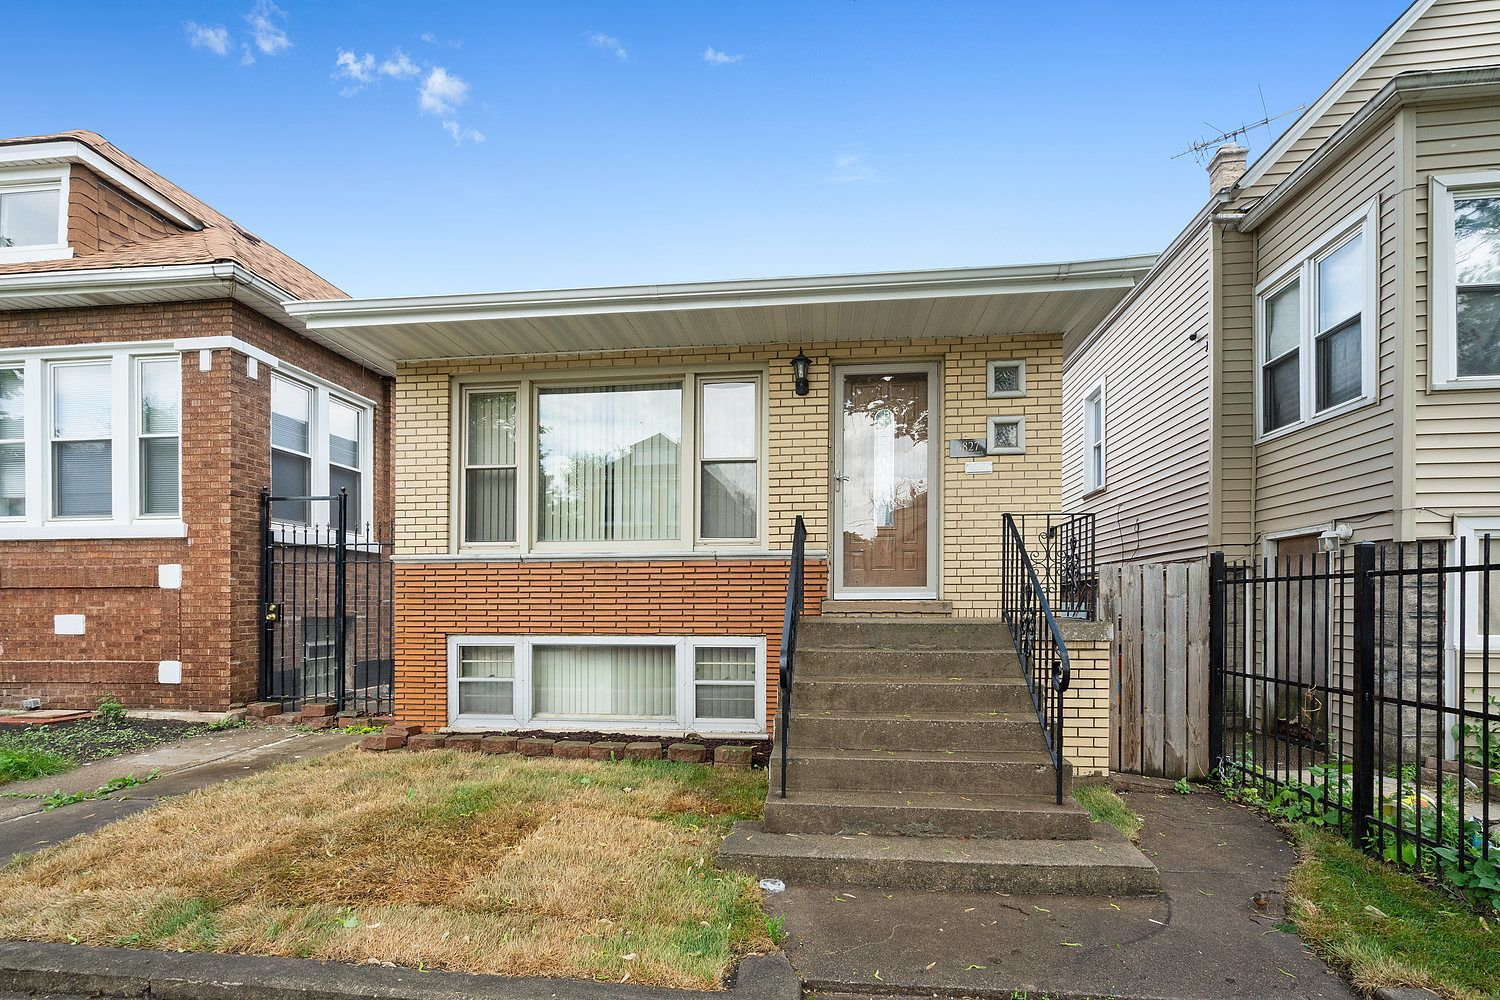 Main Photo: 6827 S CAMPBELL Avenue in Chicago: CHI - Chicago Lawn Residential for sale ()  : MLS®# 11107699